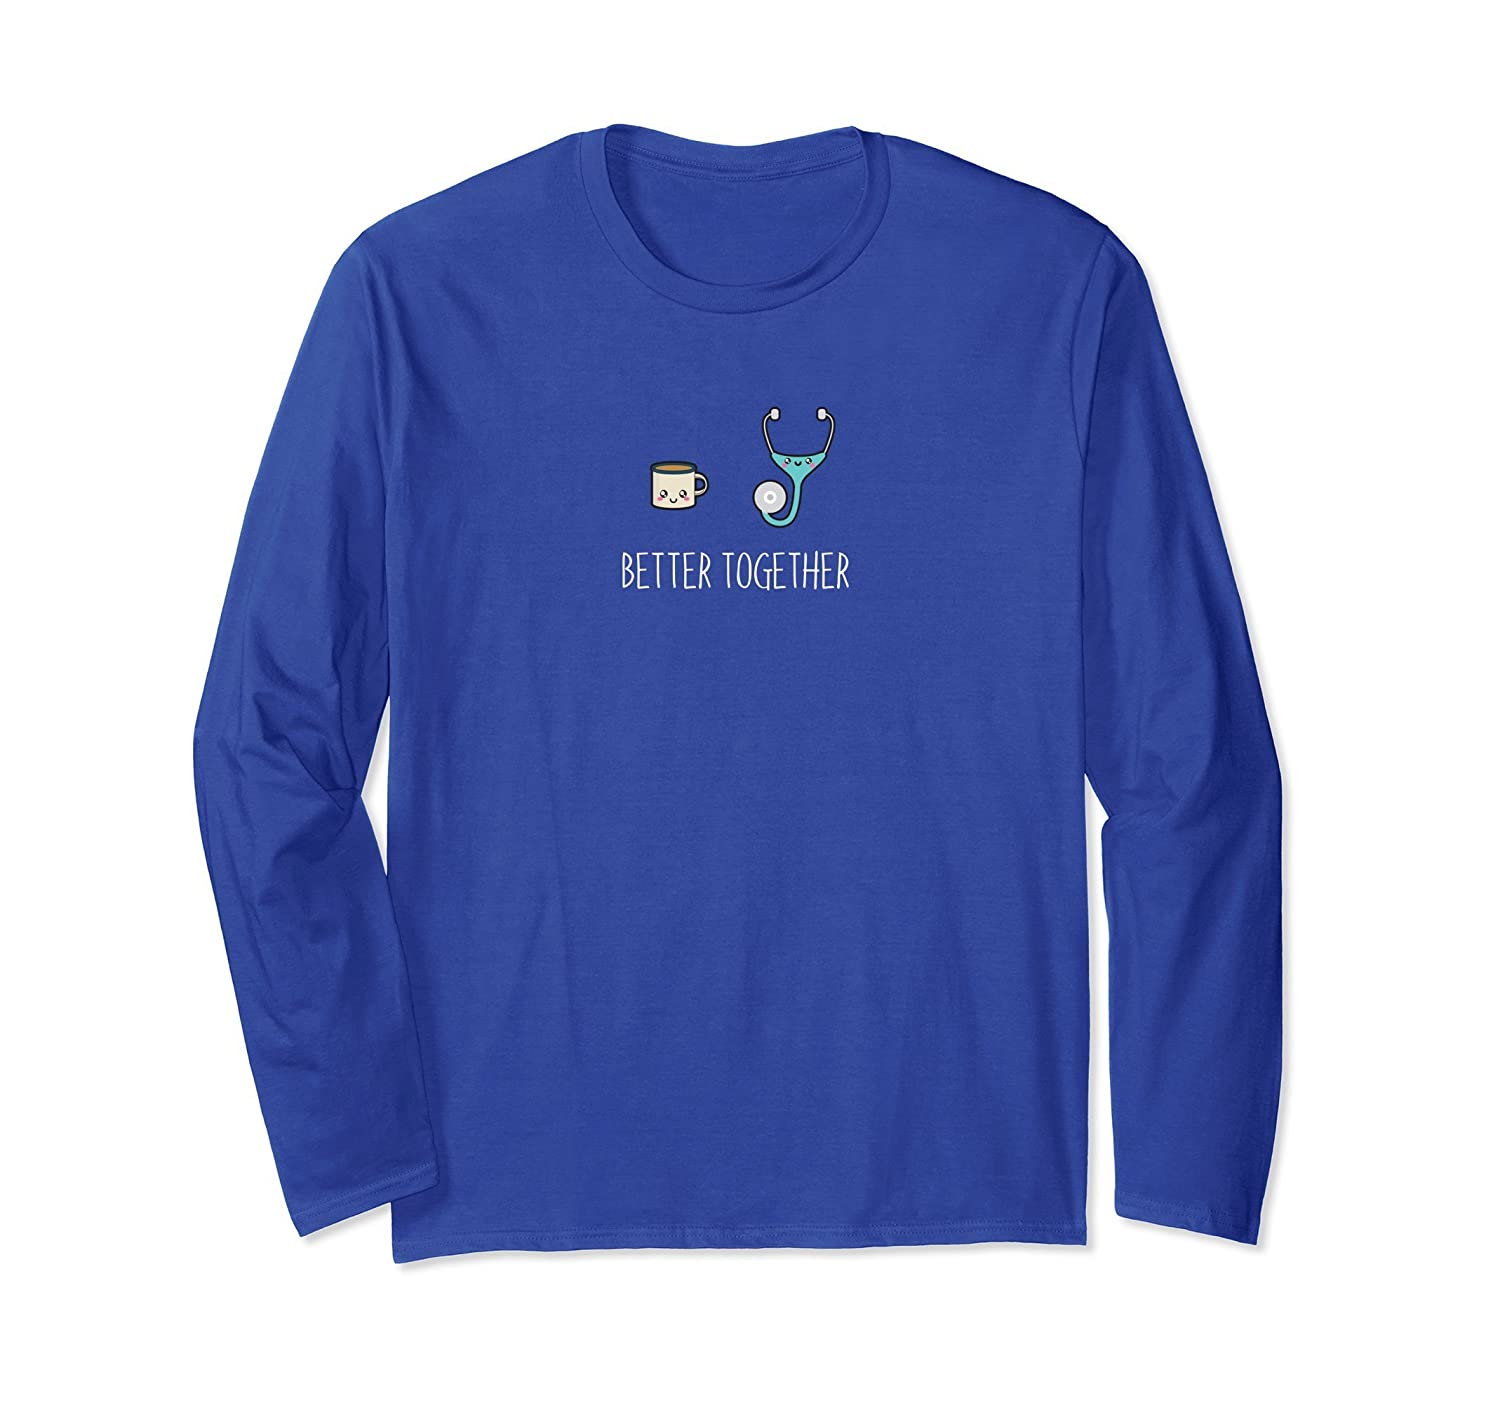 Better Together Health Care Medical Doctor Nursing L/S Tee-alottee gift